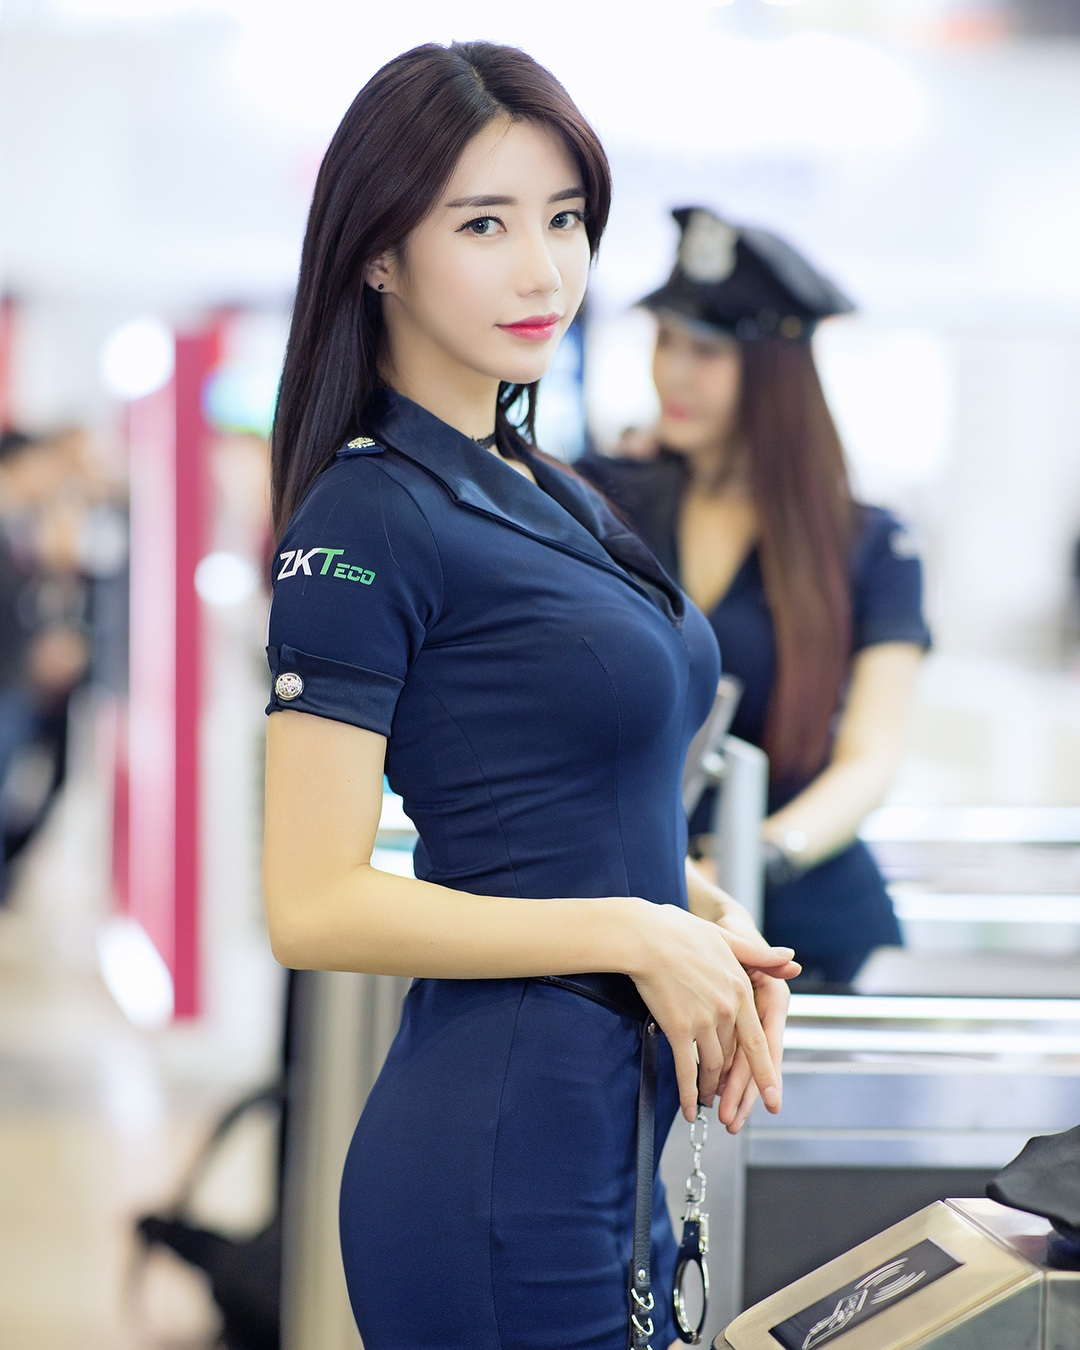 racing model Im sola hot police cosplay in the airport